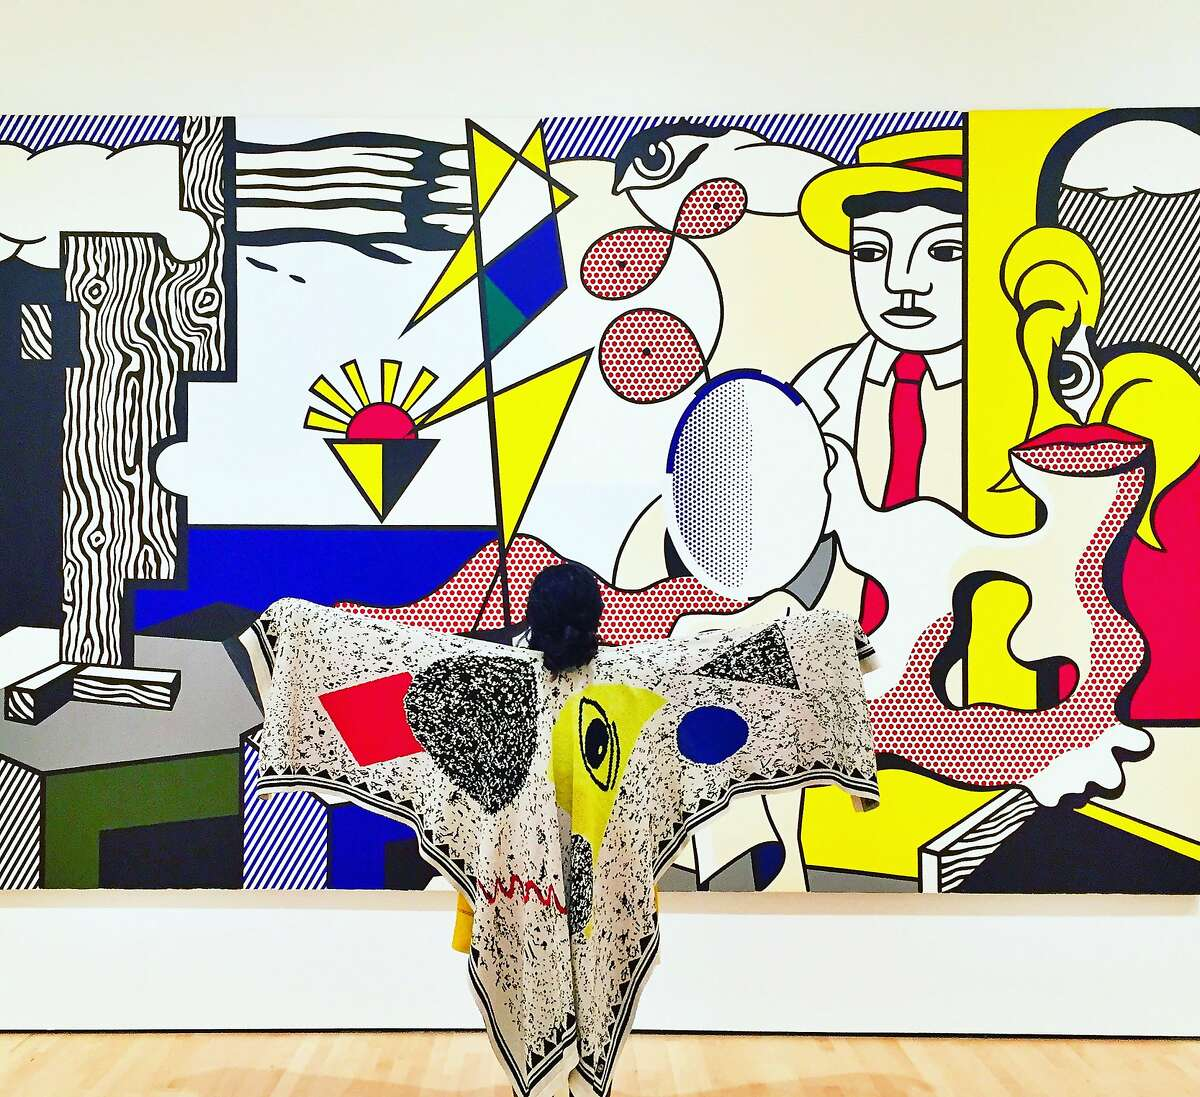 Carla Shen's self-portrait at the San Francisco Museum of Modern Art, February 2017, in front of a painting by Roy Lichtenstein. Her Instagram postings combine her love of fashion and of art.